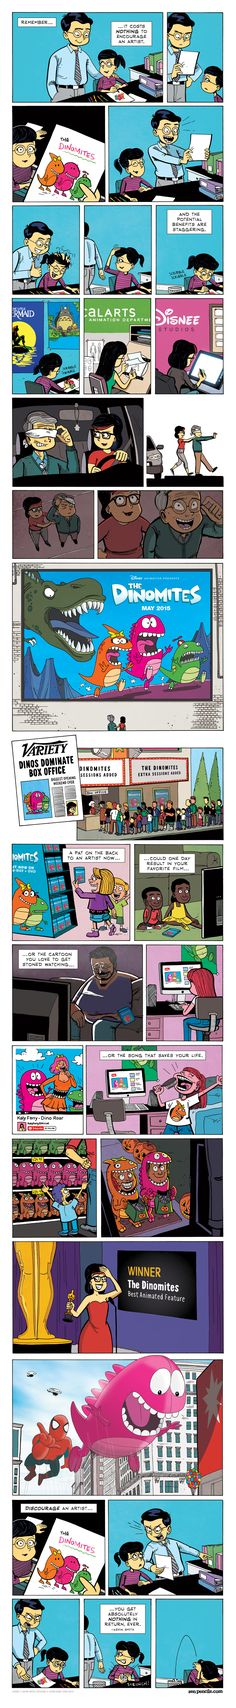 ZEN PENCILS » 163. KEVIN SMITH: It costs nothing to encourage an artist